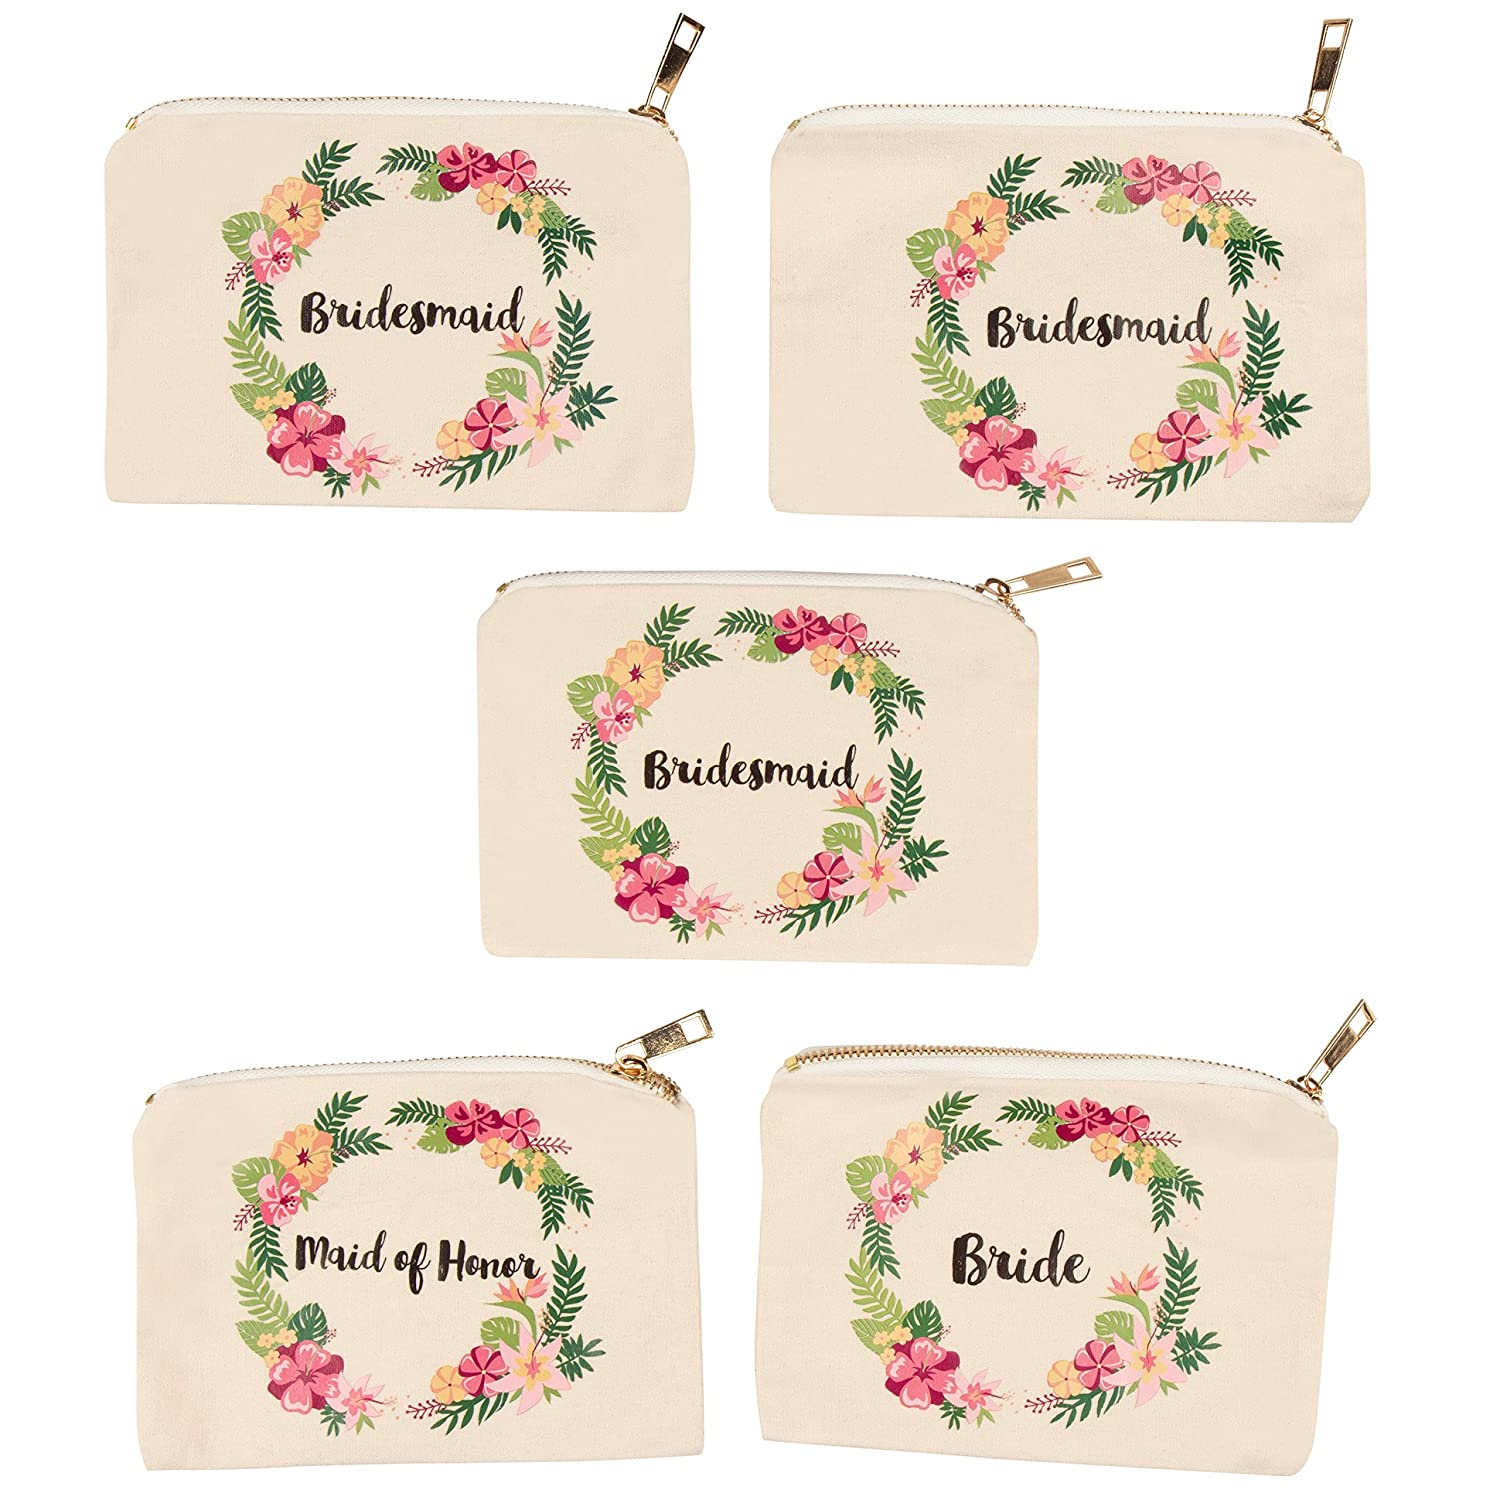 Bridal Shower Makeup Bag – 5-Pack Canvas Cosmetic Pouches for Wedding Favors, Bachelorette Party Gifts, Bride Tribe Accessories, Tropical Floral Wreath Design, 7.2 x 4.7 Inches